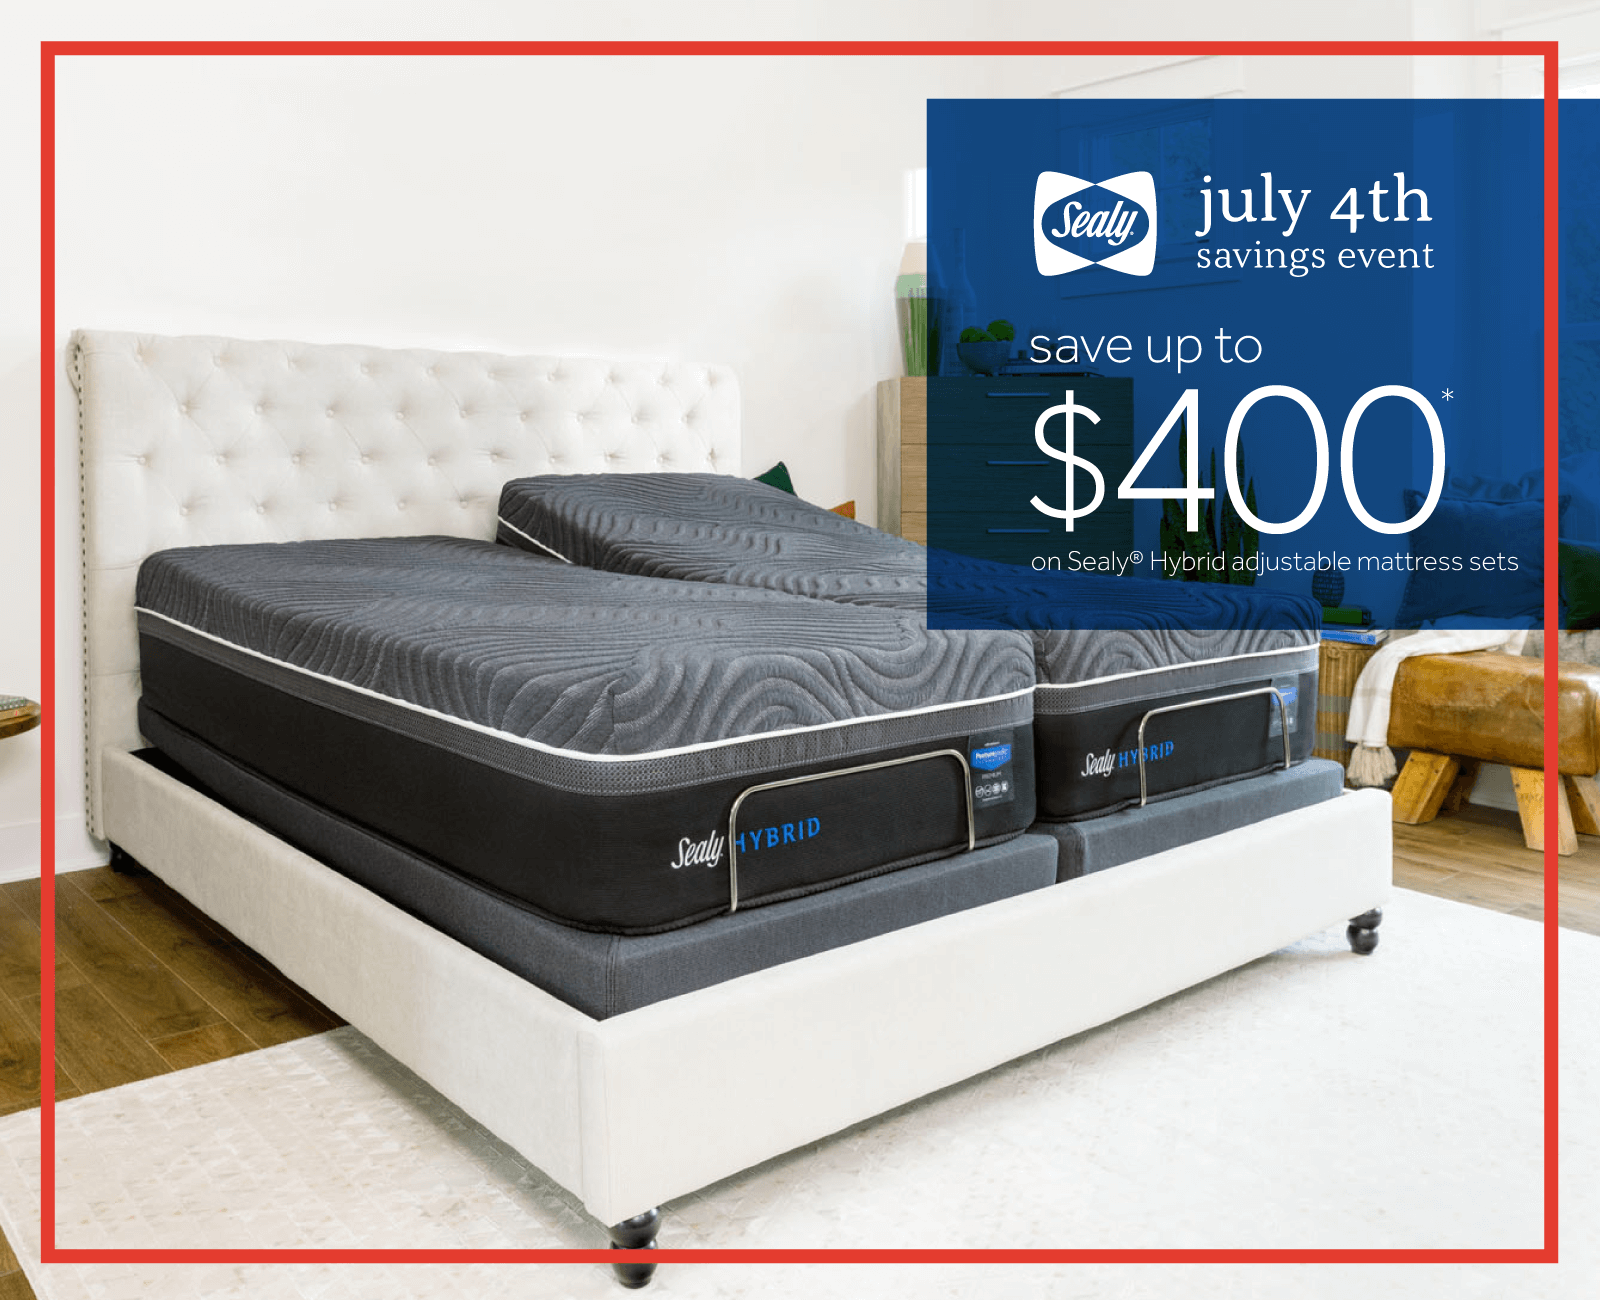 Sealy July 4th Savings Event